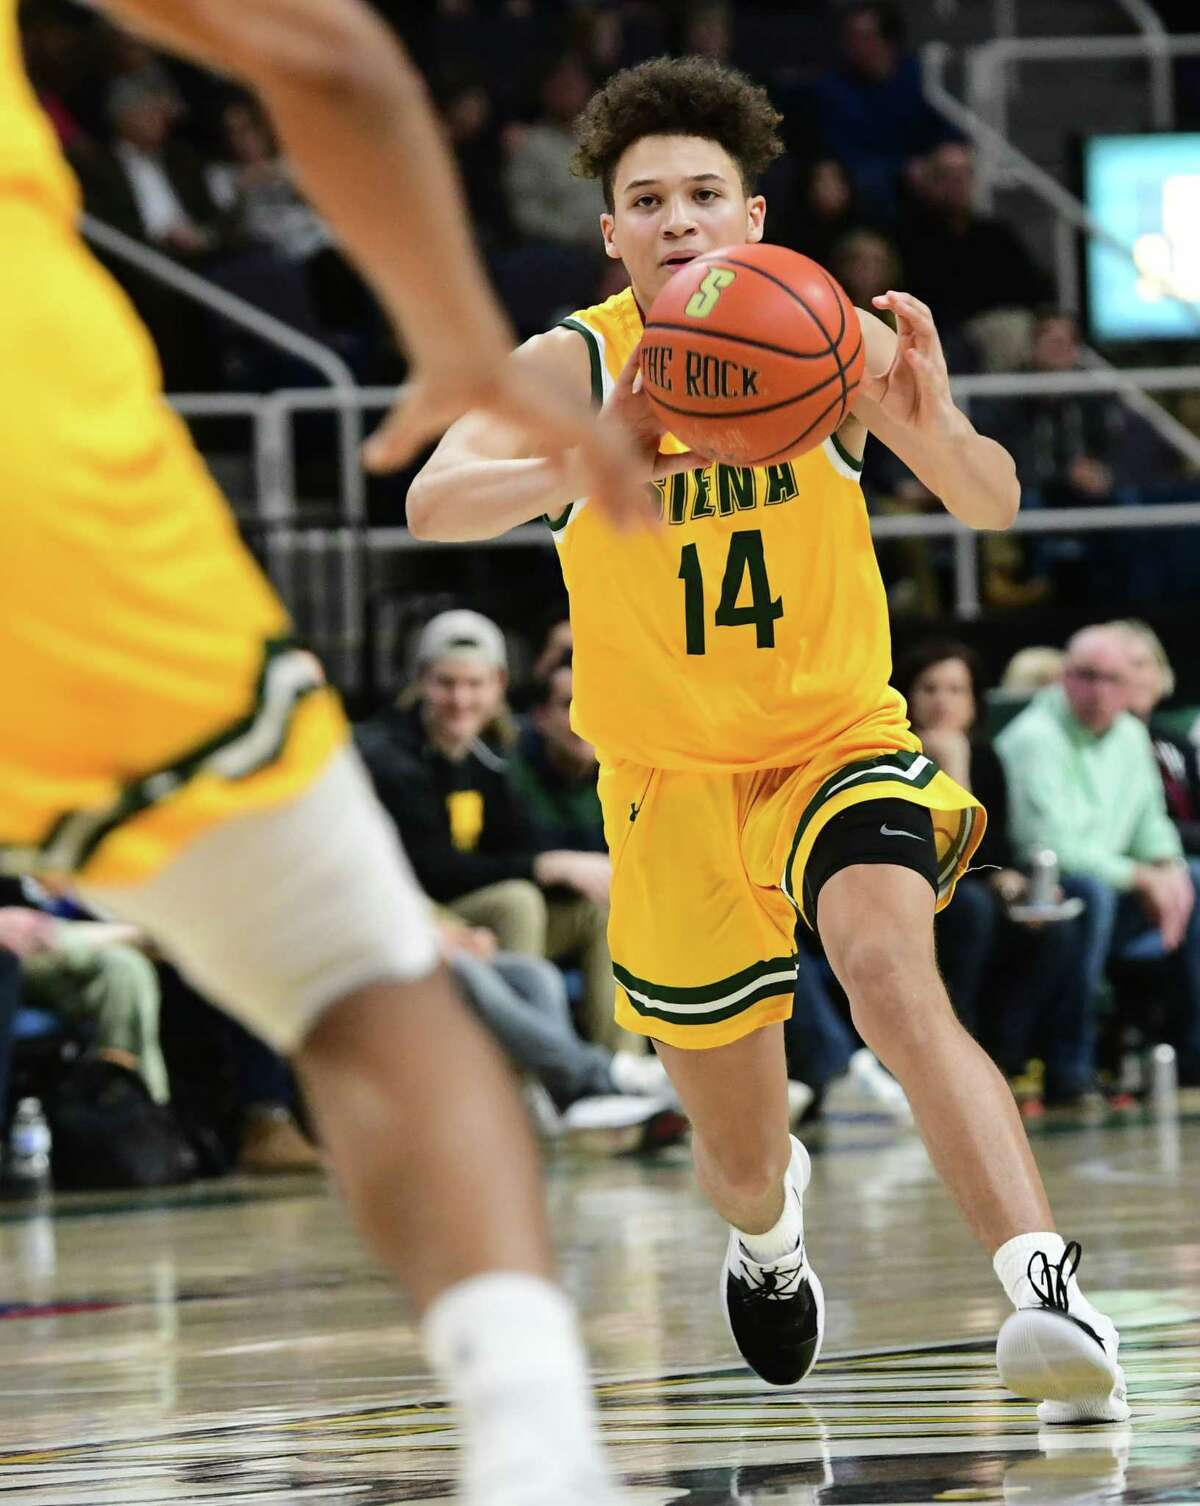 Siena's Jordan King passes the ball during a game against Niagara at the Times Union Center on Wednesday, March 4, 2020 in Albany, N.Y. (Lori Van Buren/Times Union)